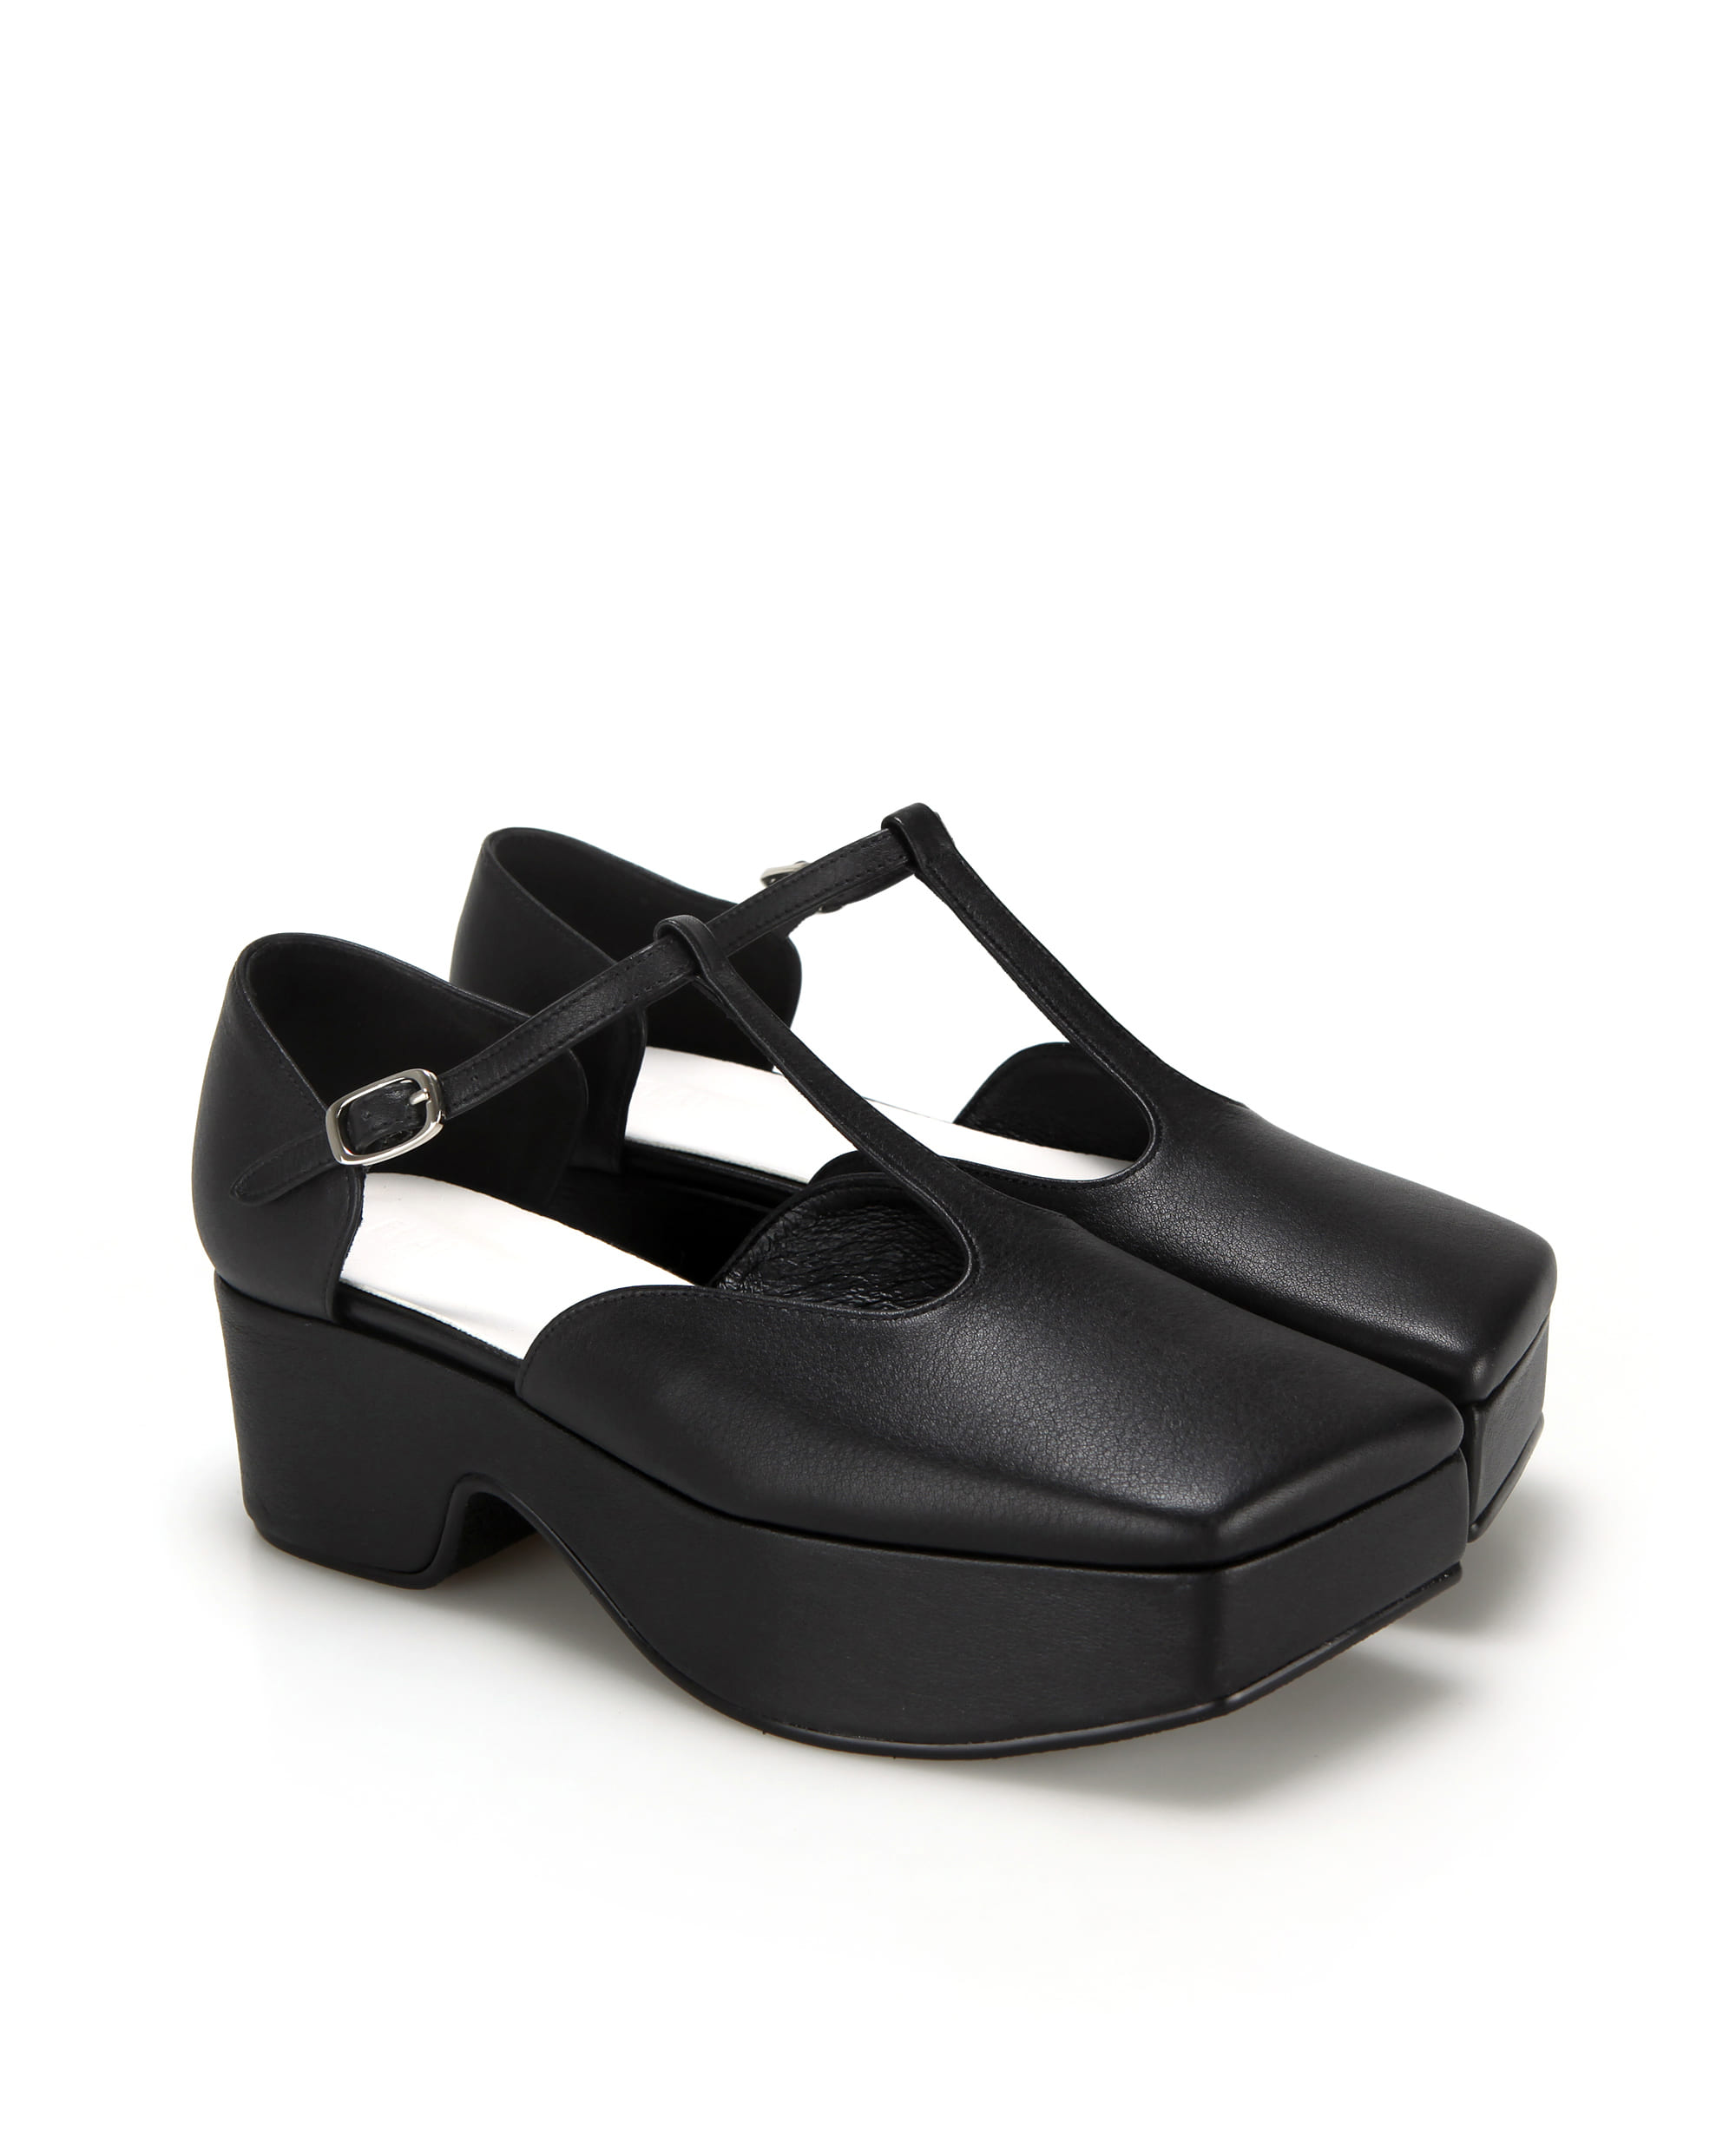 Squared toe T-strap mary jane platforms | Black